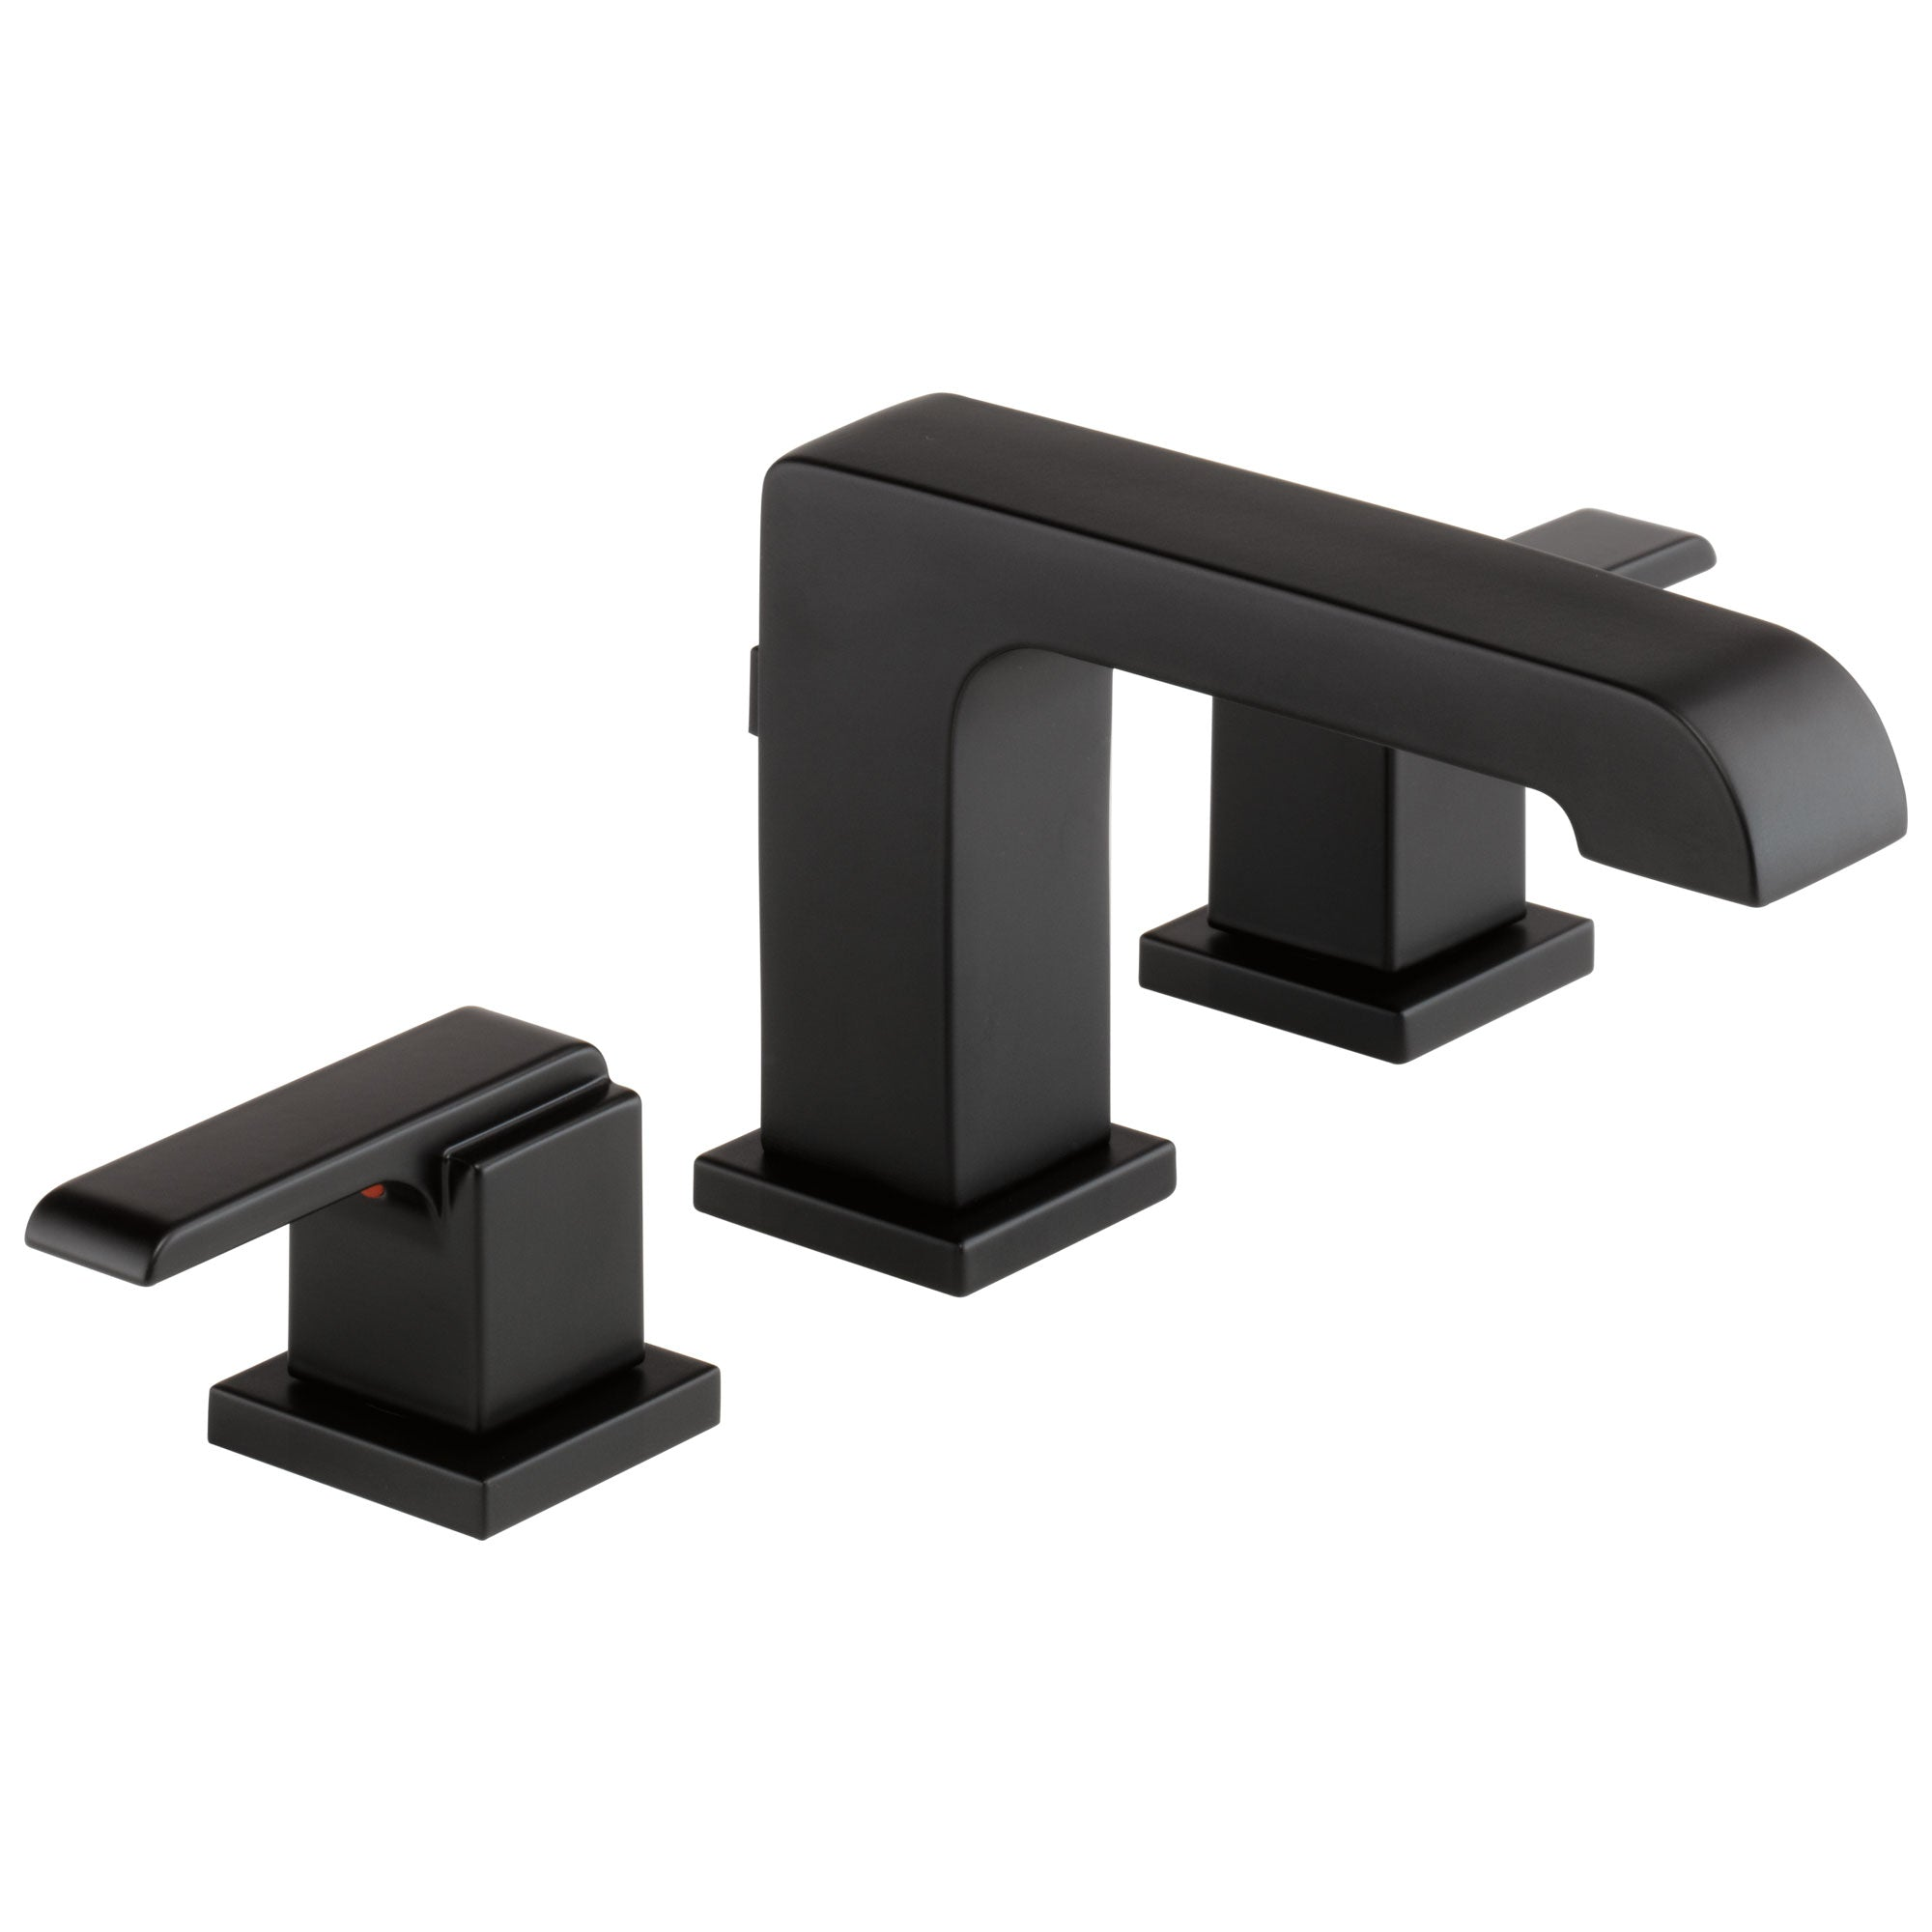 Delta Ara Collection Matte Black Finish Two Handle Modern Widespread Bathroom Sink Lavy Faucet with Metal Pop-up Drain D3567BLMPUDST